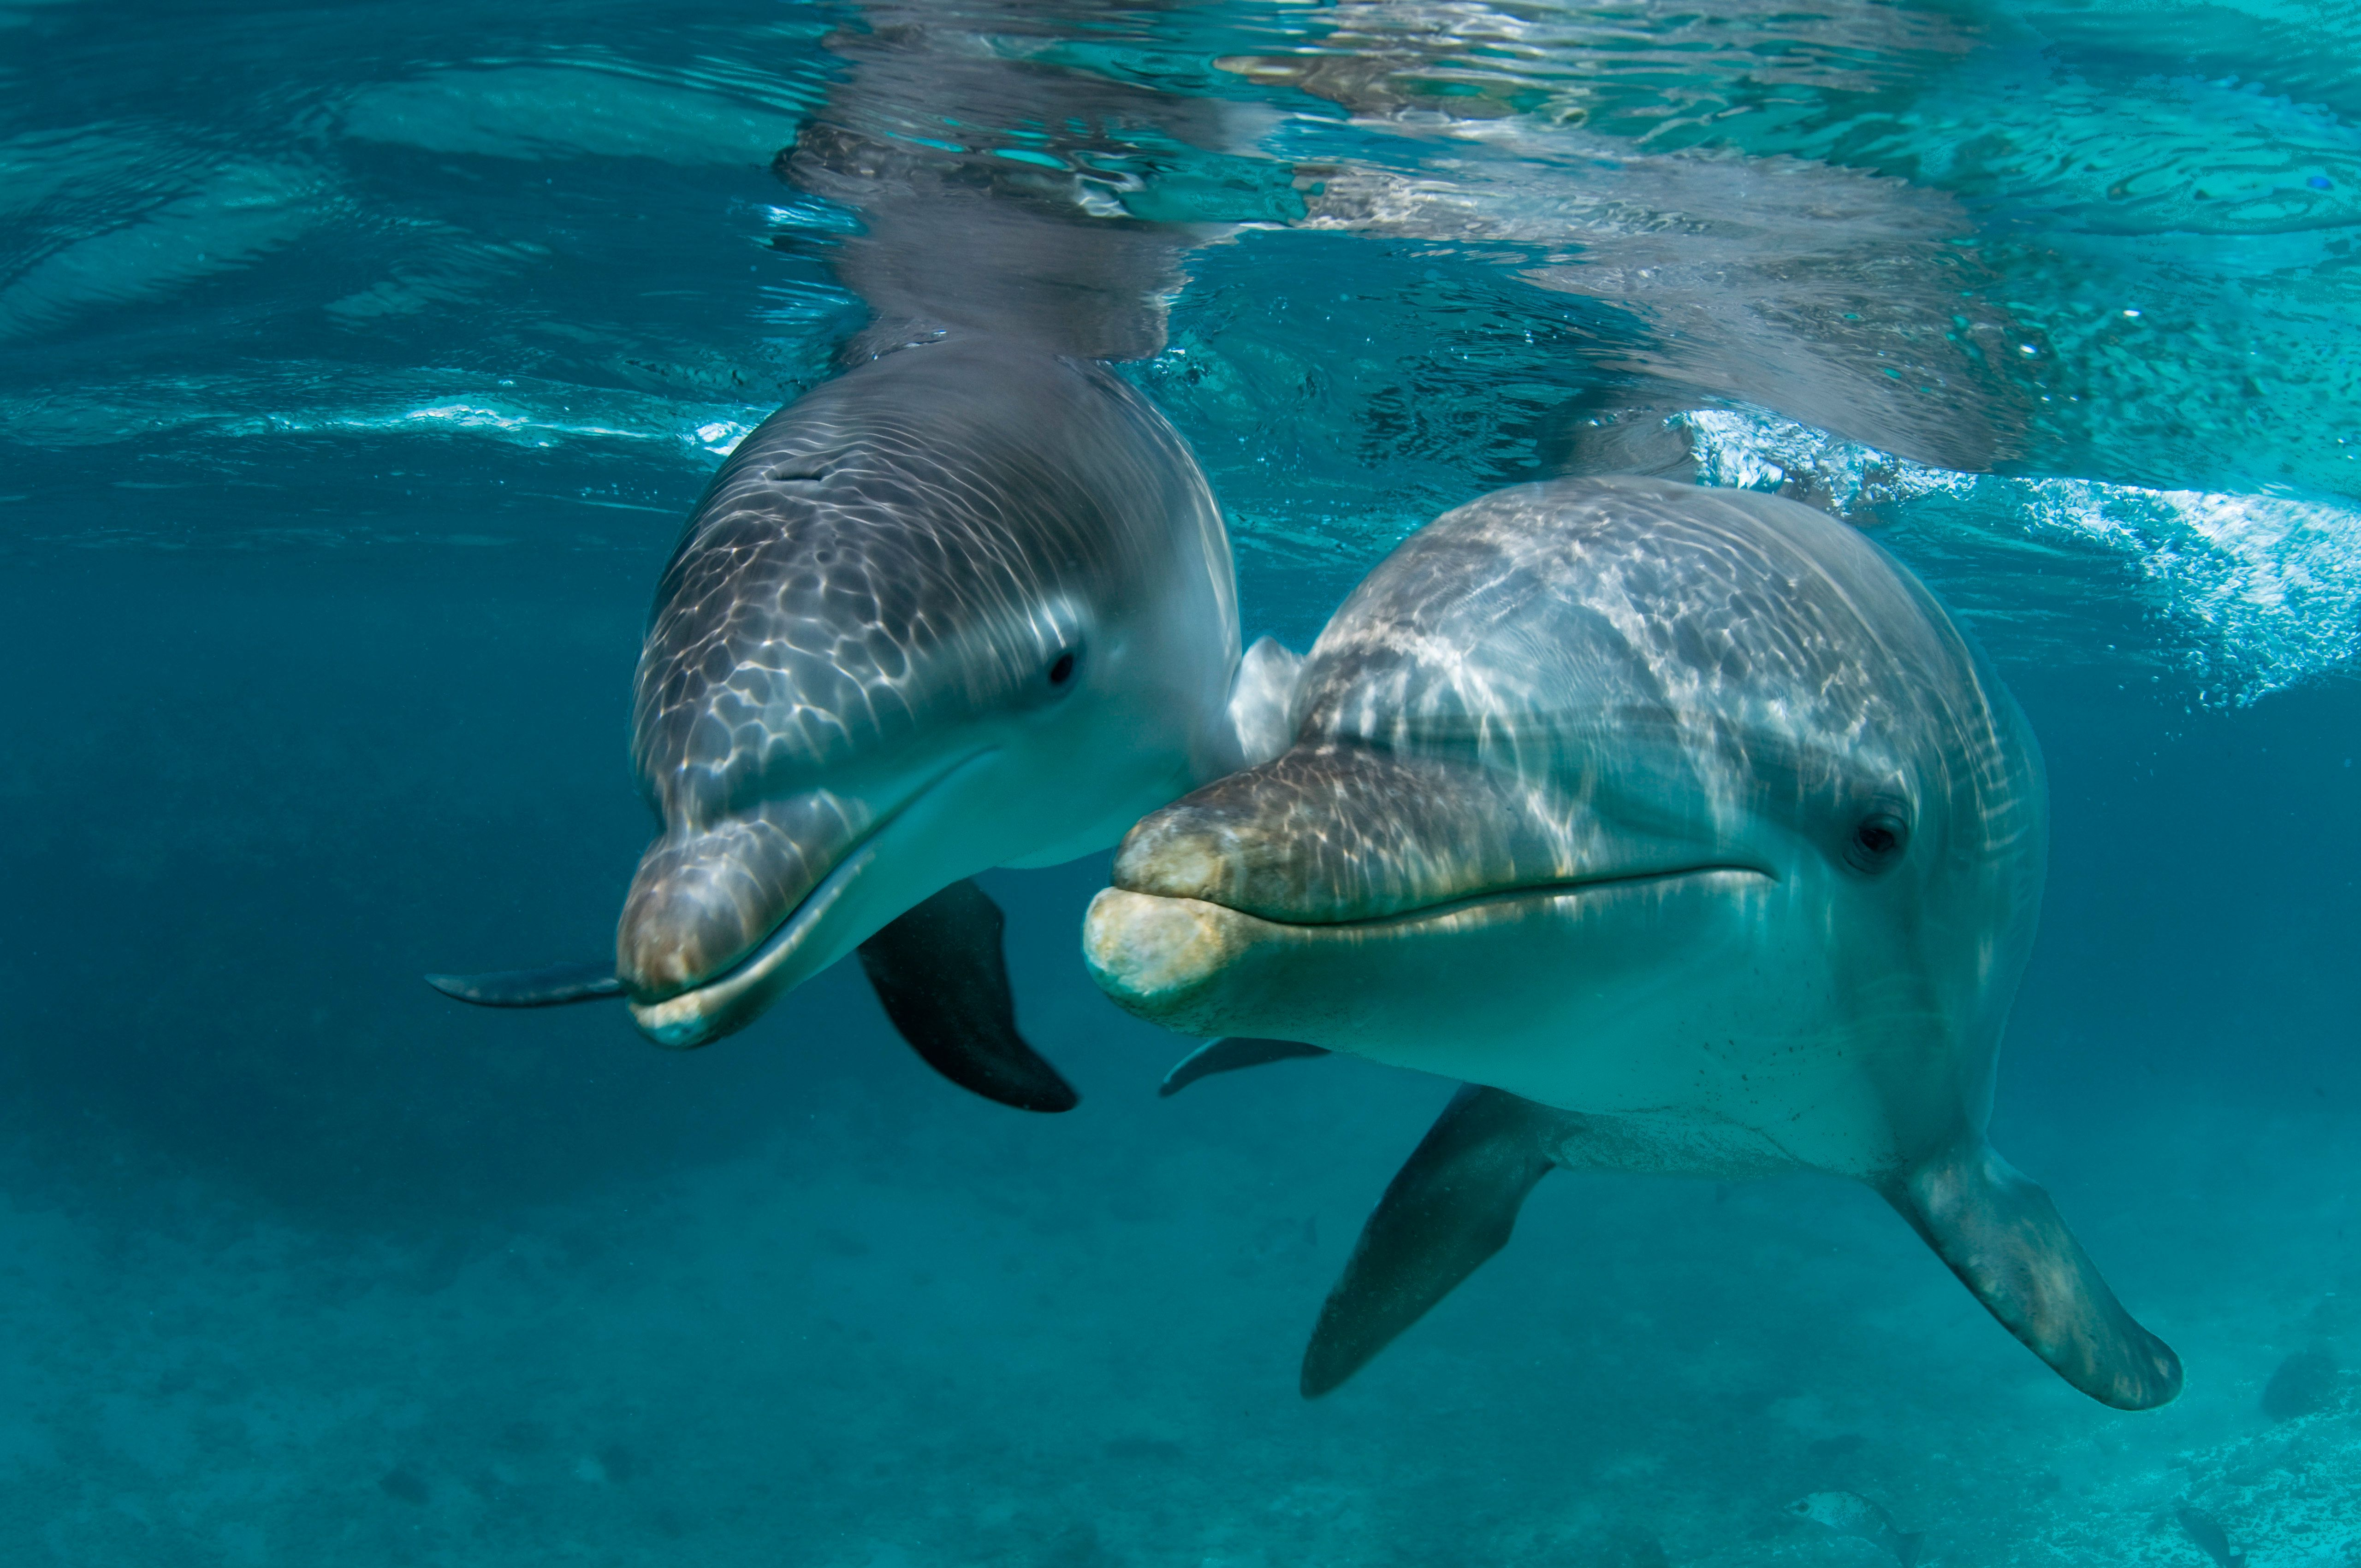 Baby Atlantic bottlenose dolphin (Tursiops truncatus) and mother, Curacao, Netherlands Antilles, (Photo by Wild Horizons/UIG via Getty Images)